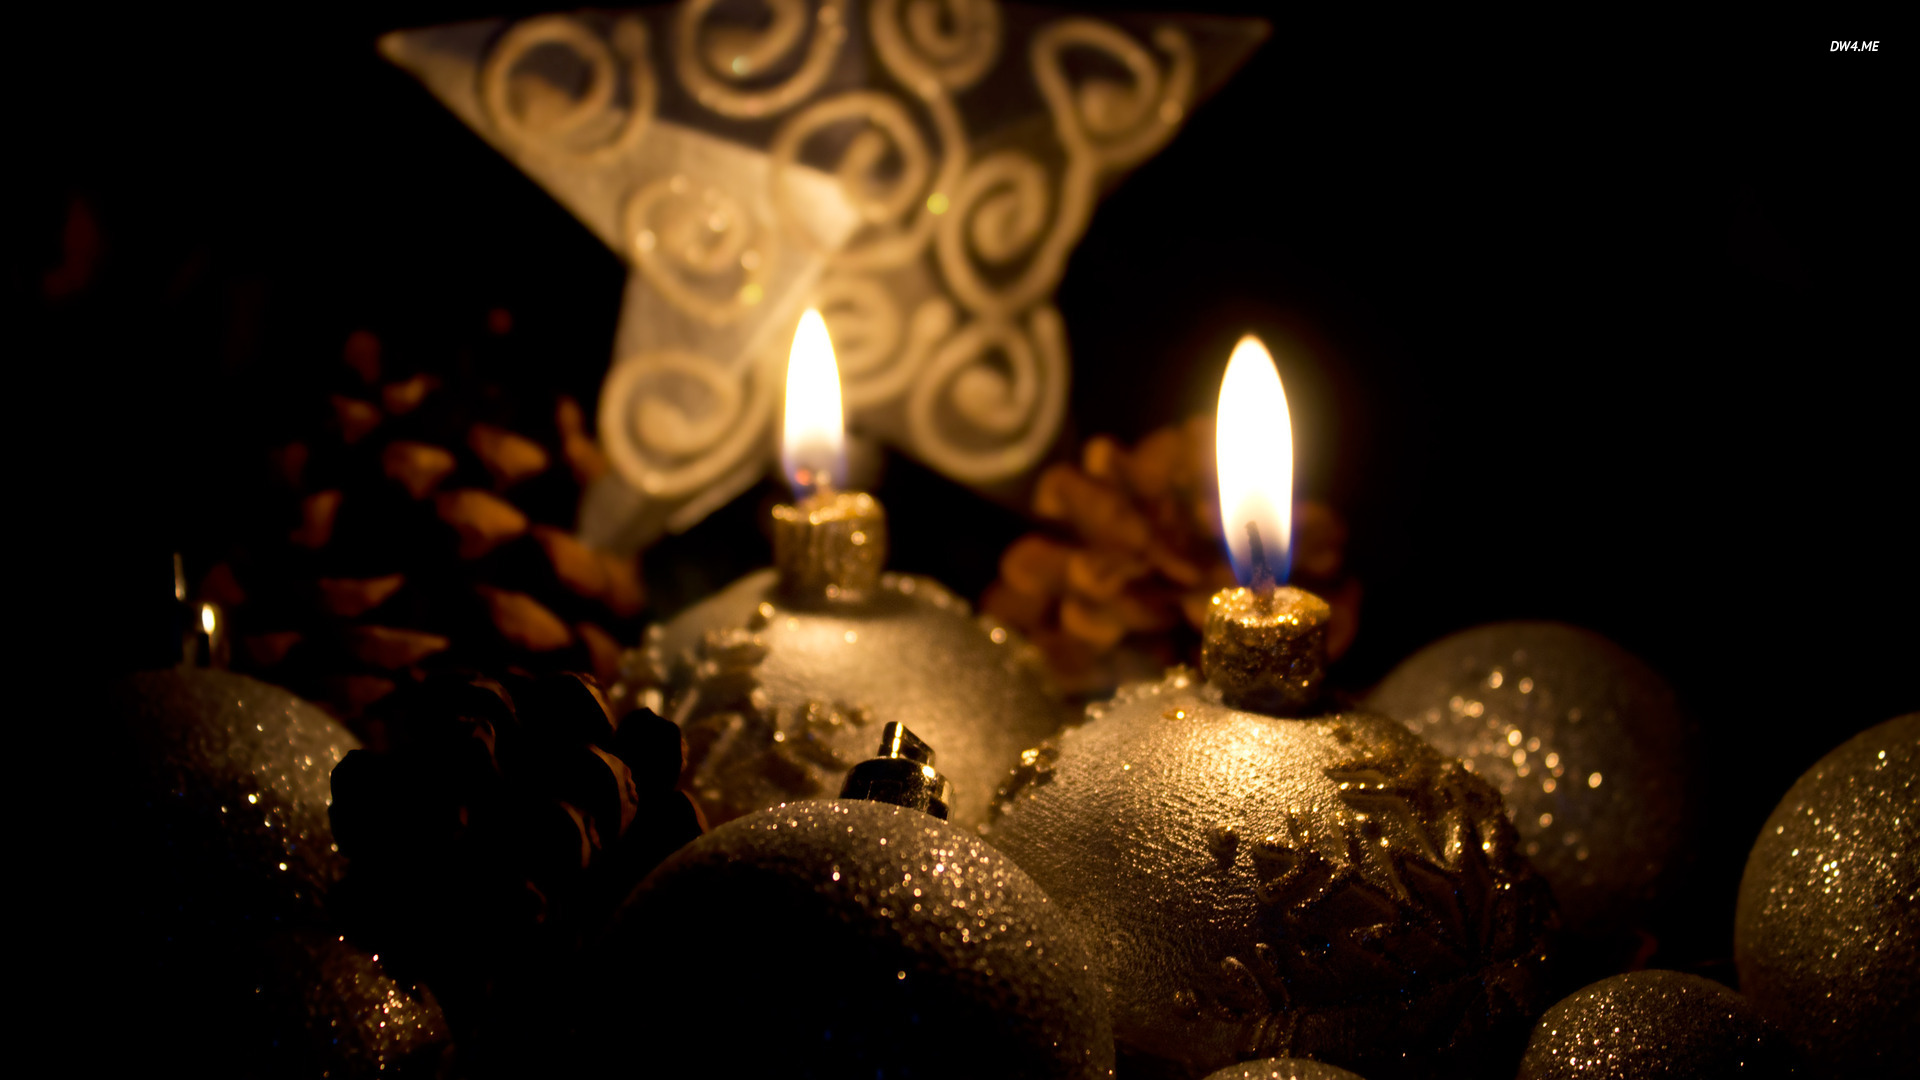 Free Download Golden Christmas Candles Wallpaper Photography